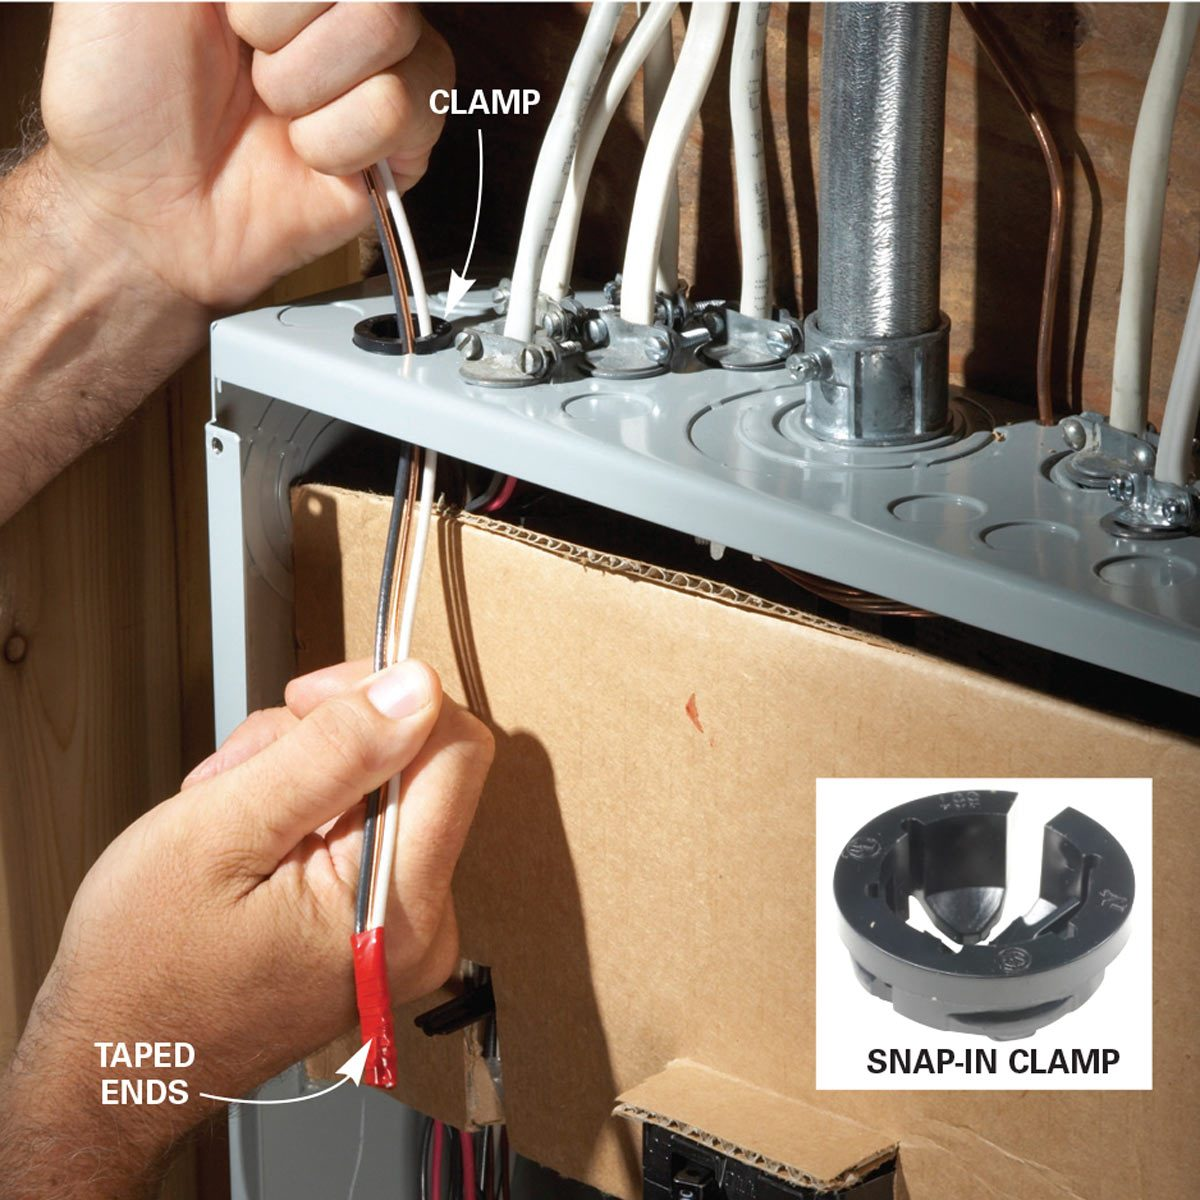 Run the cable through the clamp